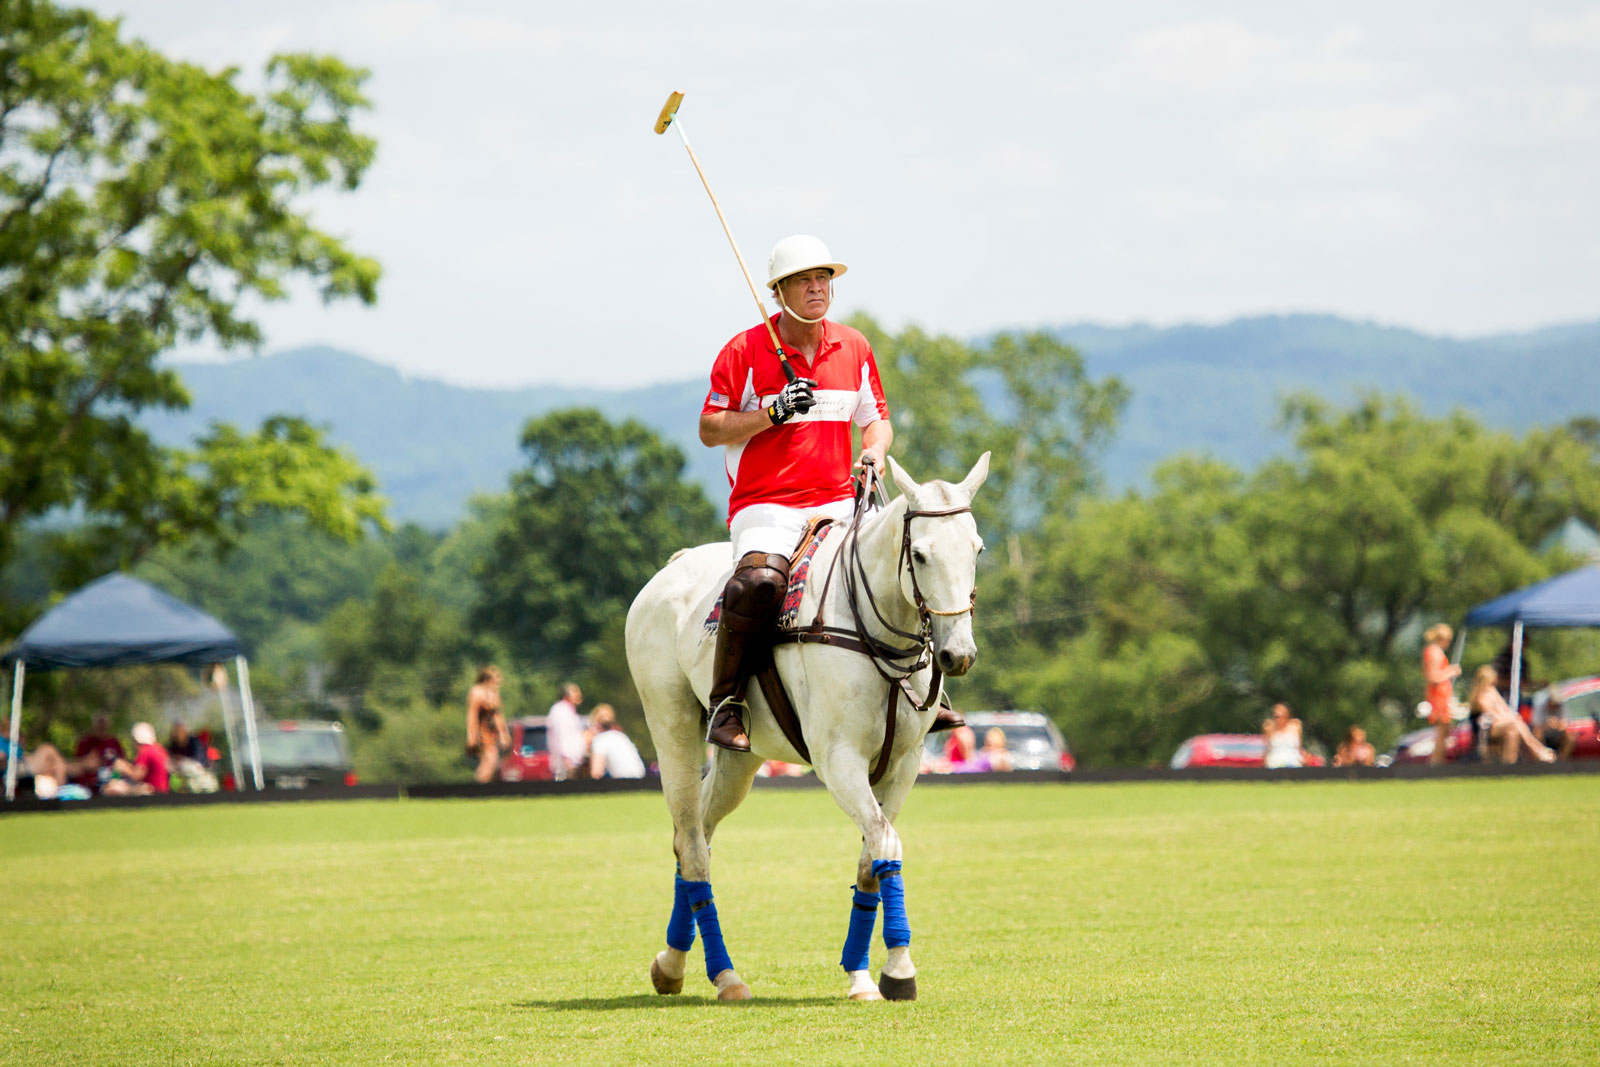 Polo at King Family Vineyards Crozet Virginia